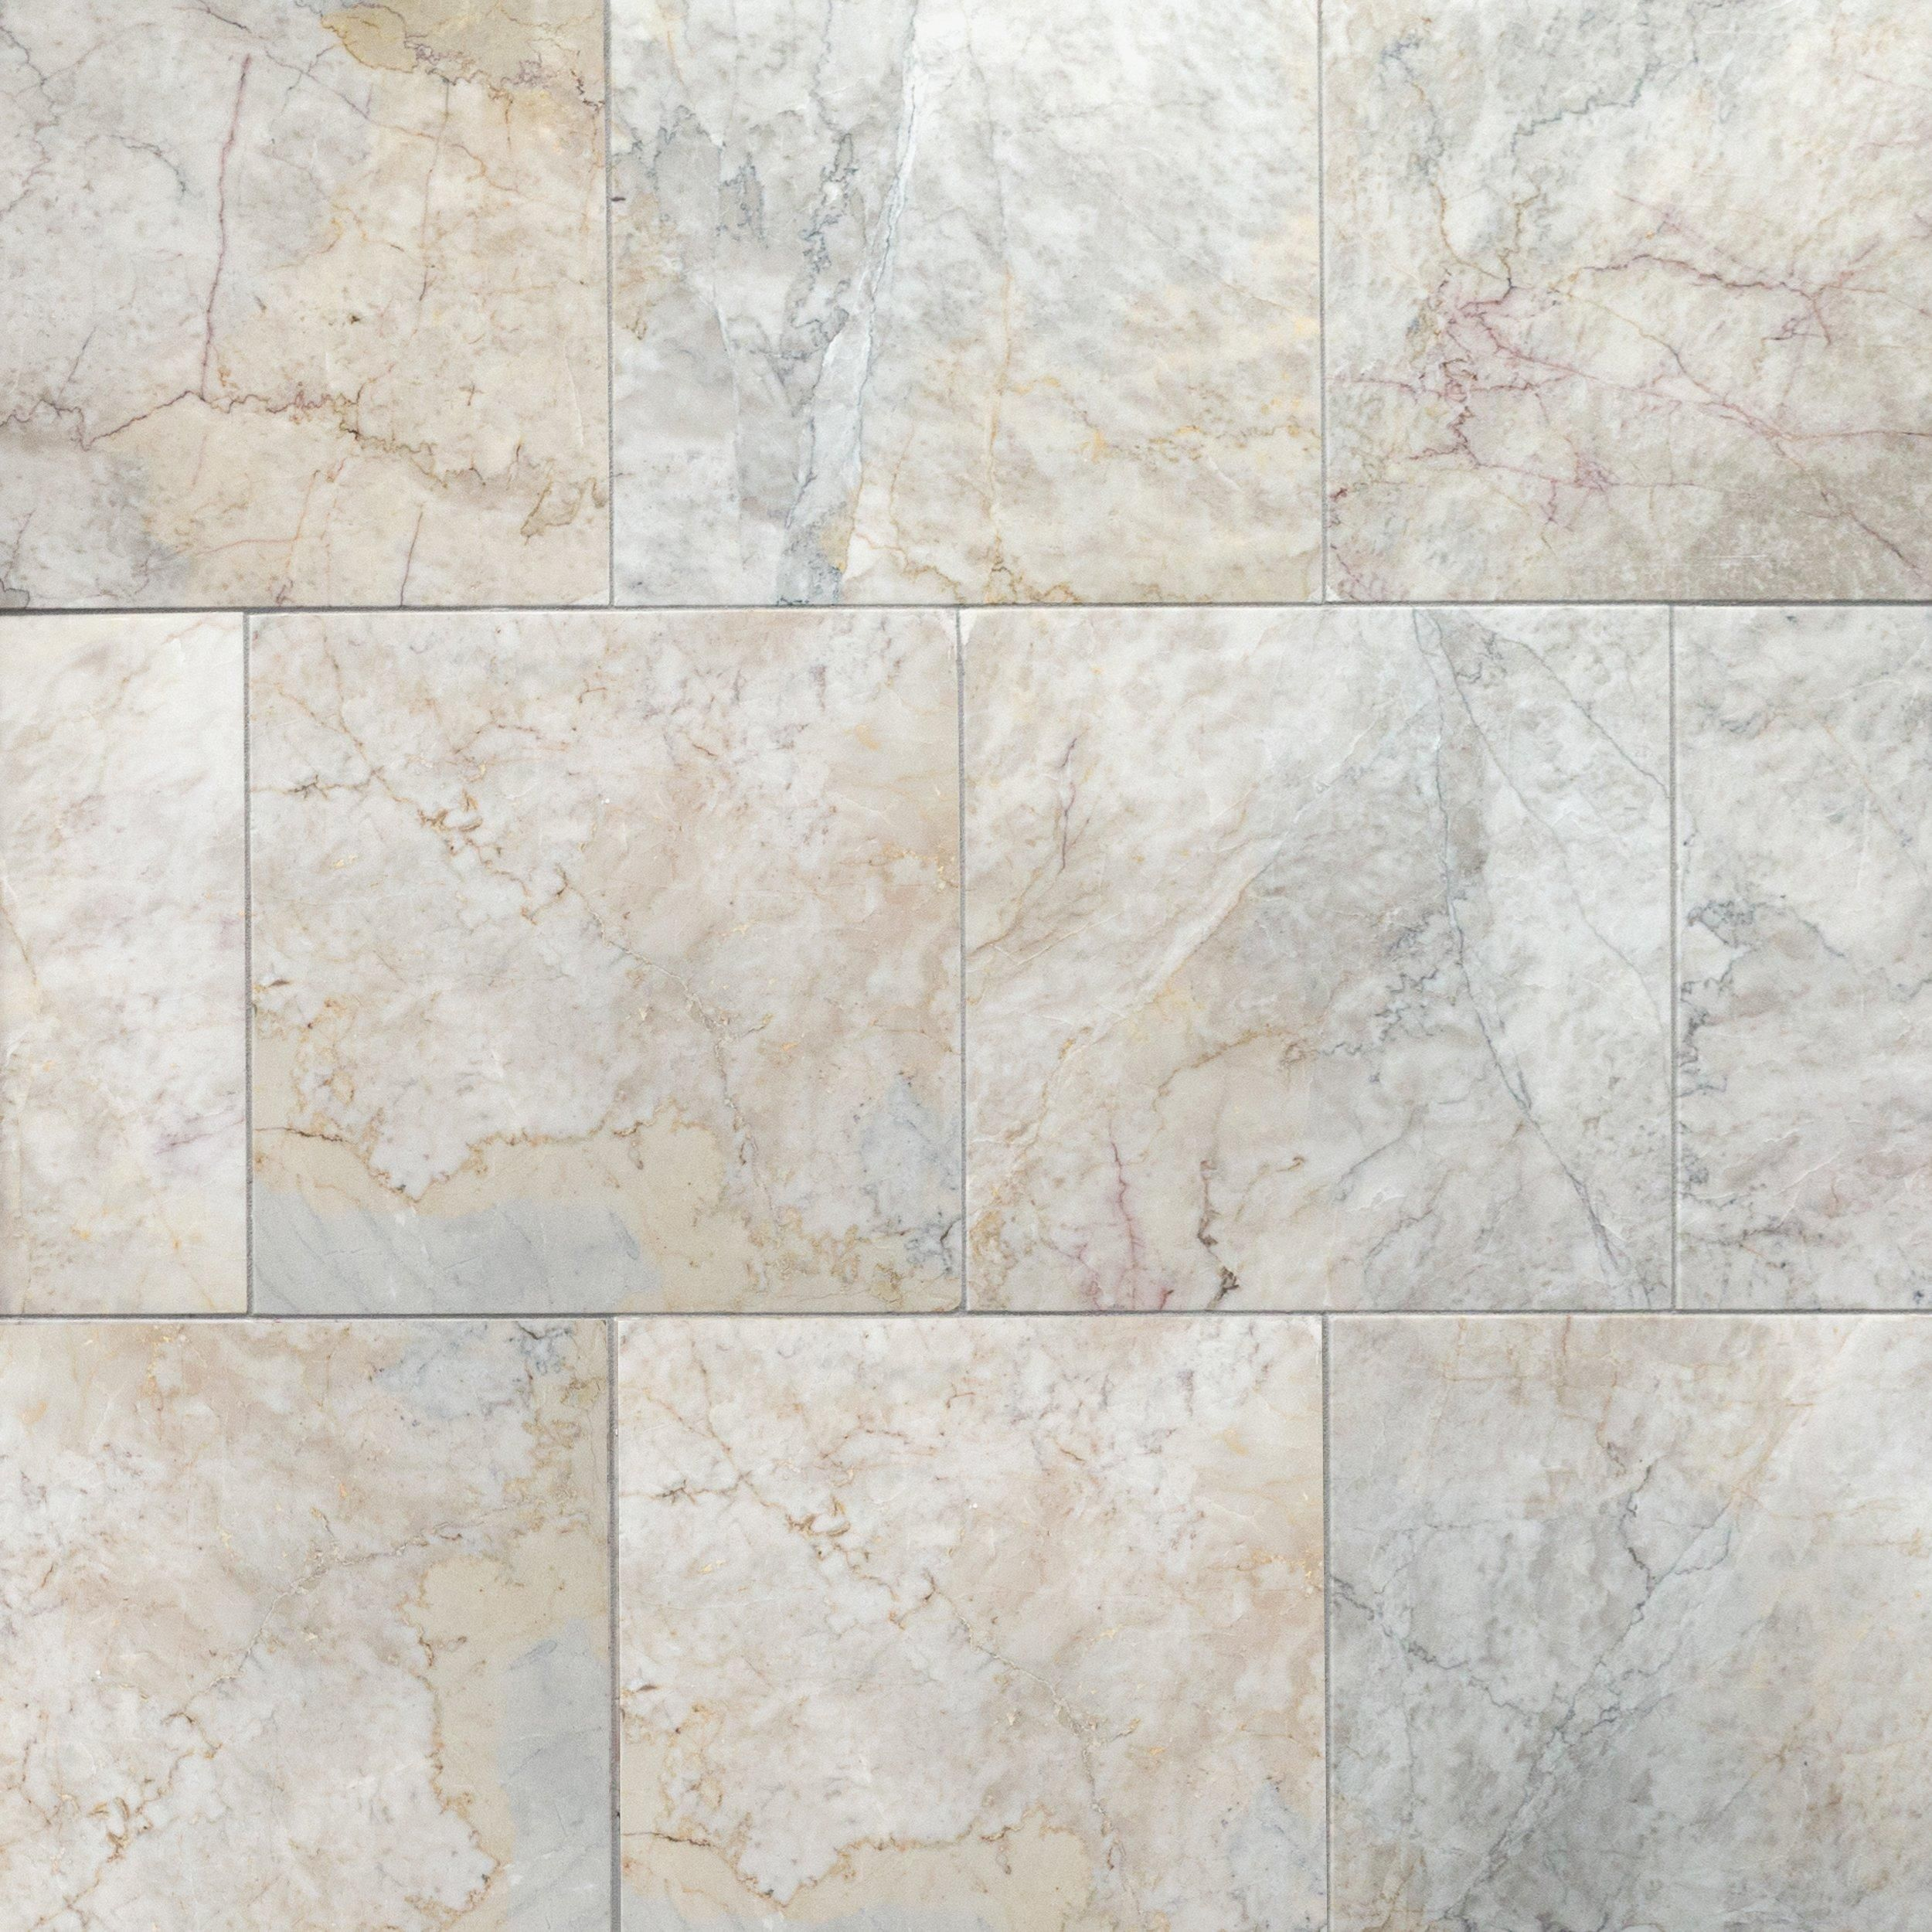 Dynasty Cream Marble Tile Floor Decor Cream Marble Tiles White Marble Tiles Marble Tile